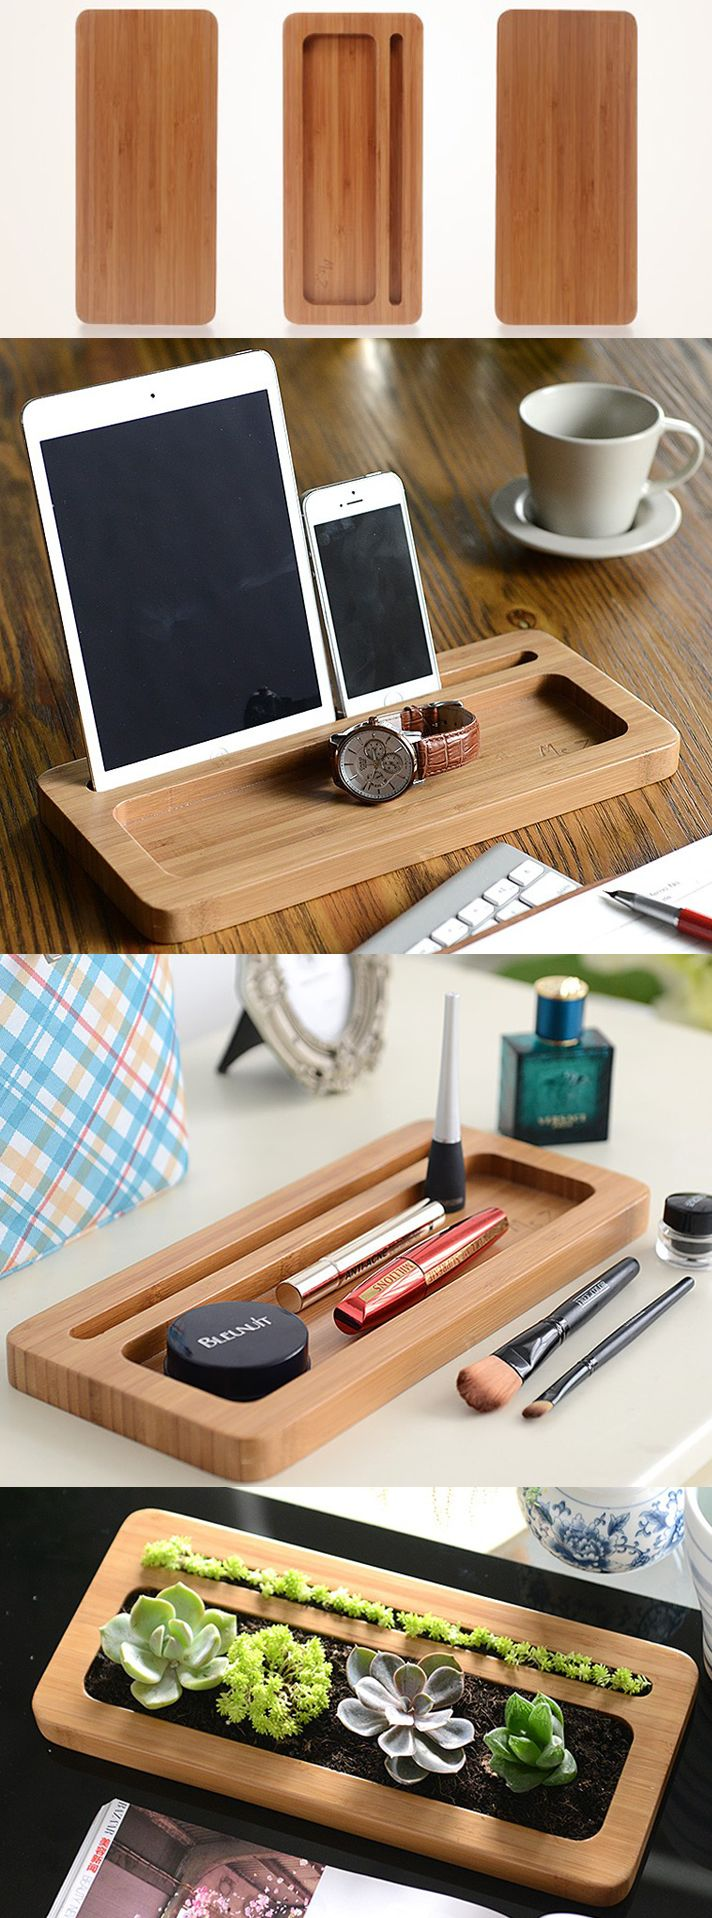 Bamboo Wooden Office Desk Stationery Organizer Tray Pen Pencil